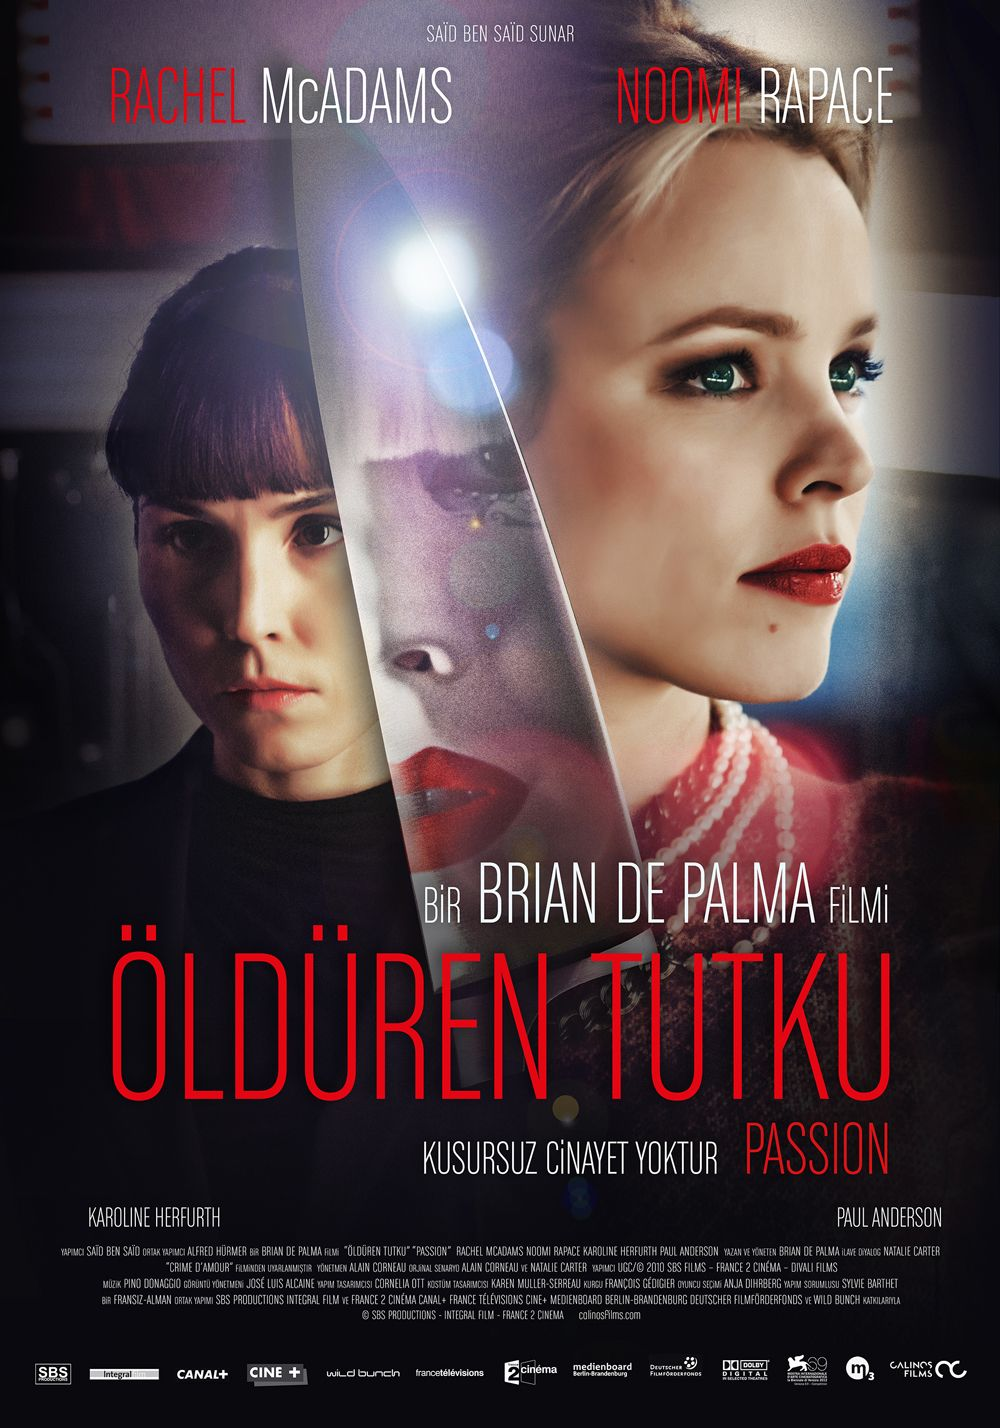 PASSION Turkish poster, directed by Brian de Palma